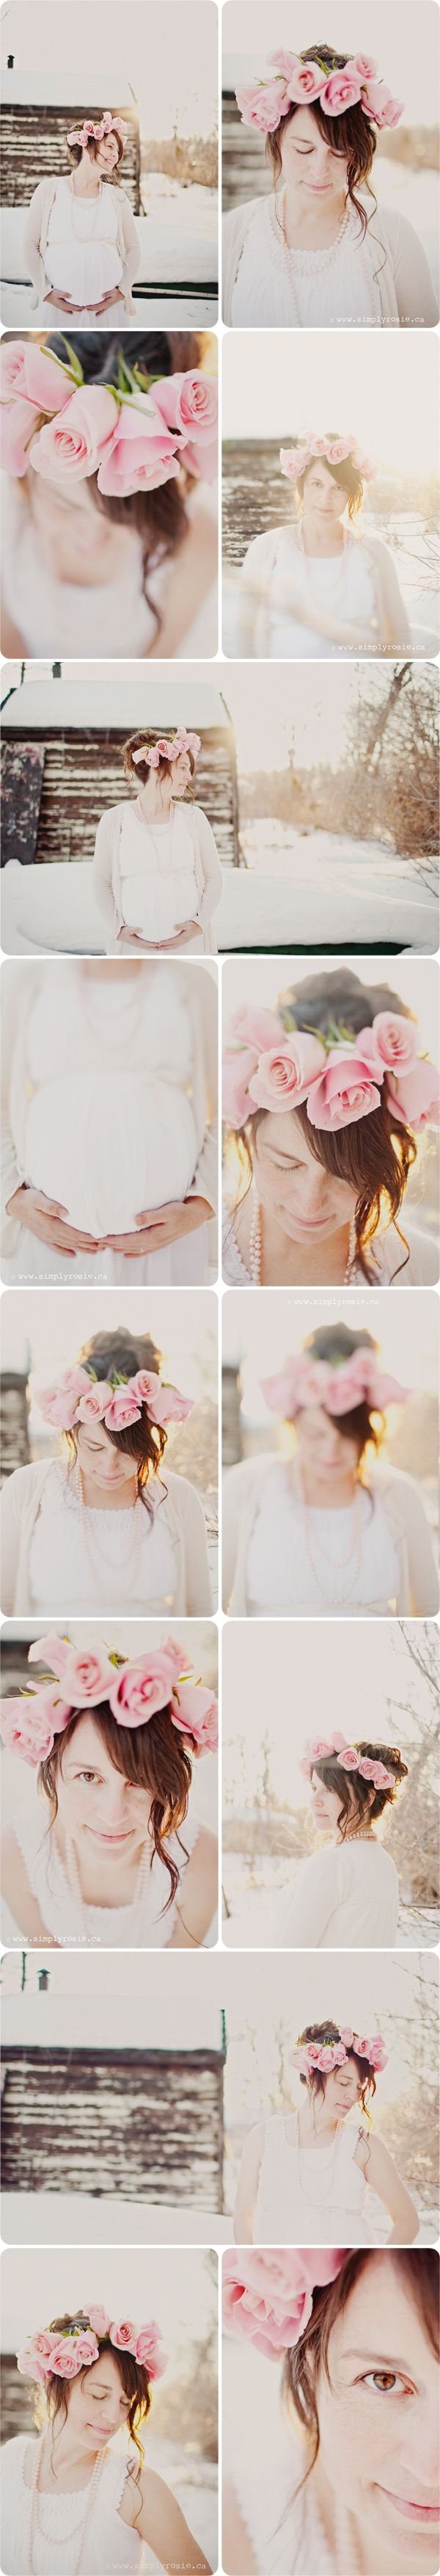 Baby bump pictures @Mademoiselle Mariela